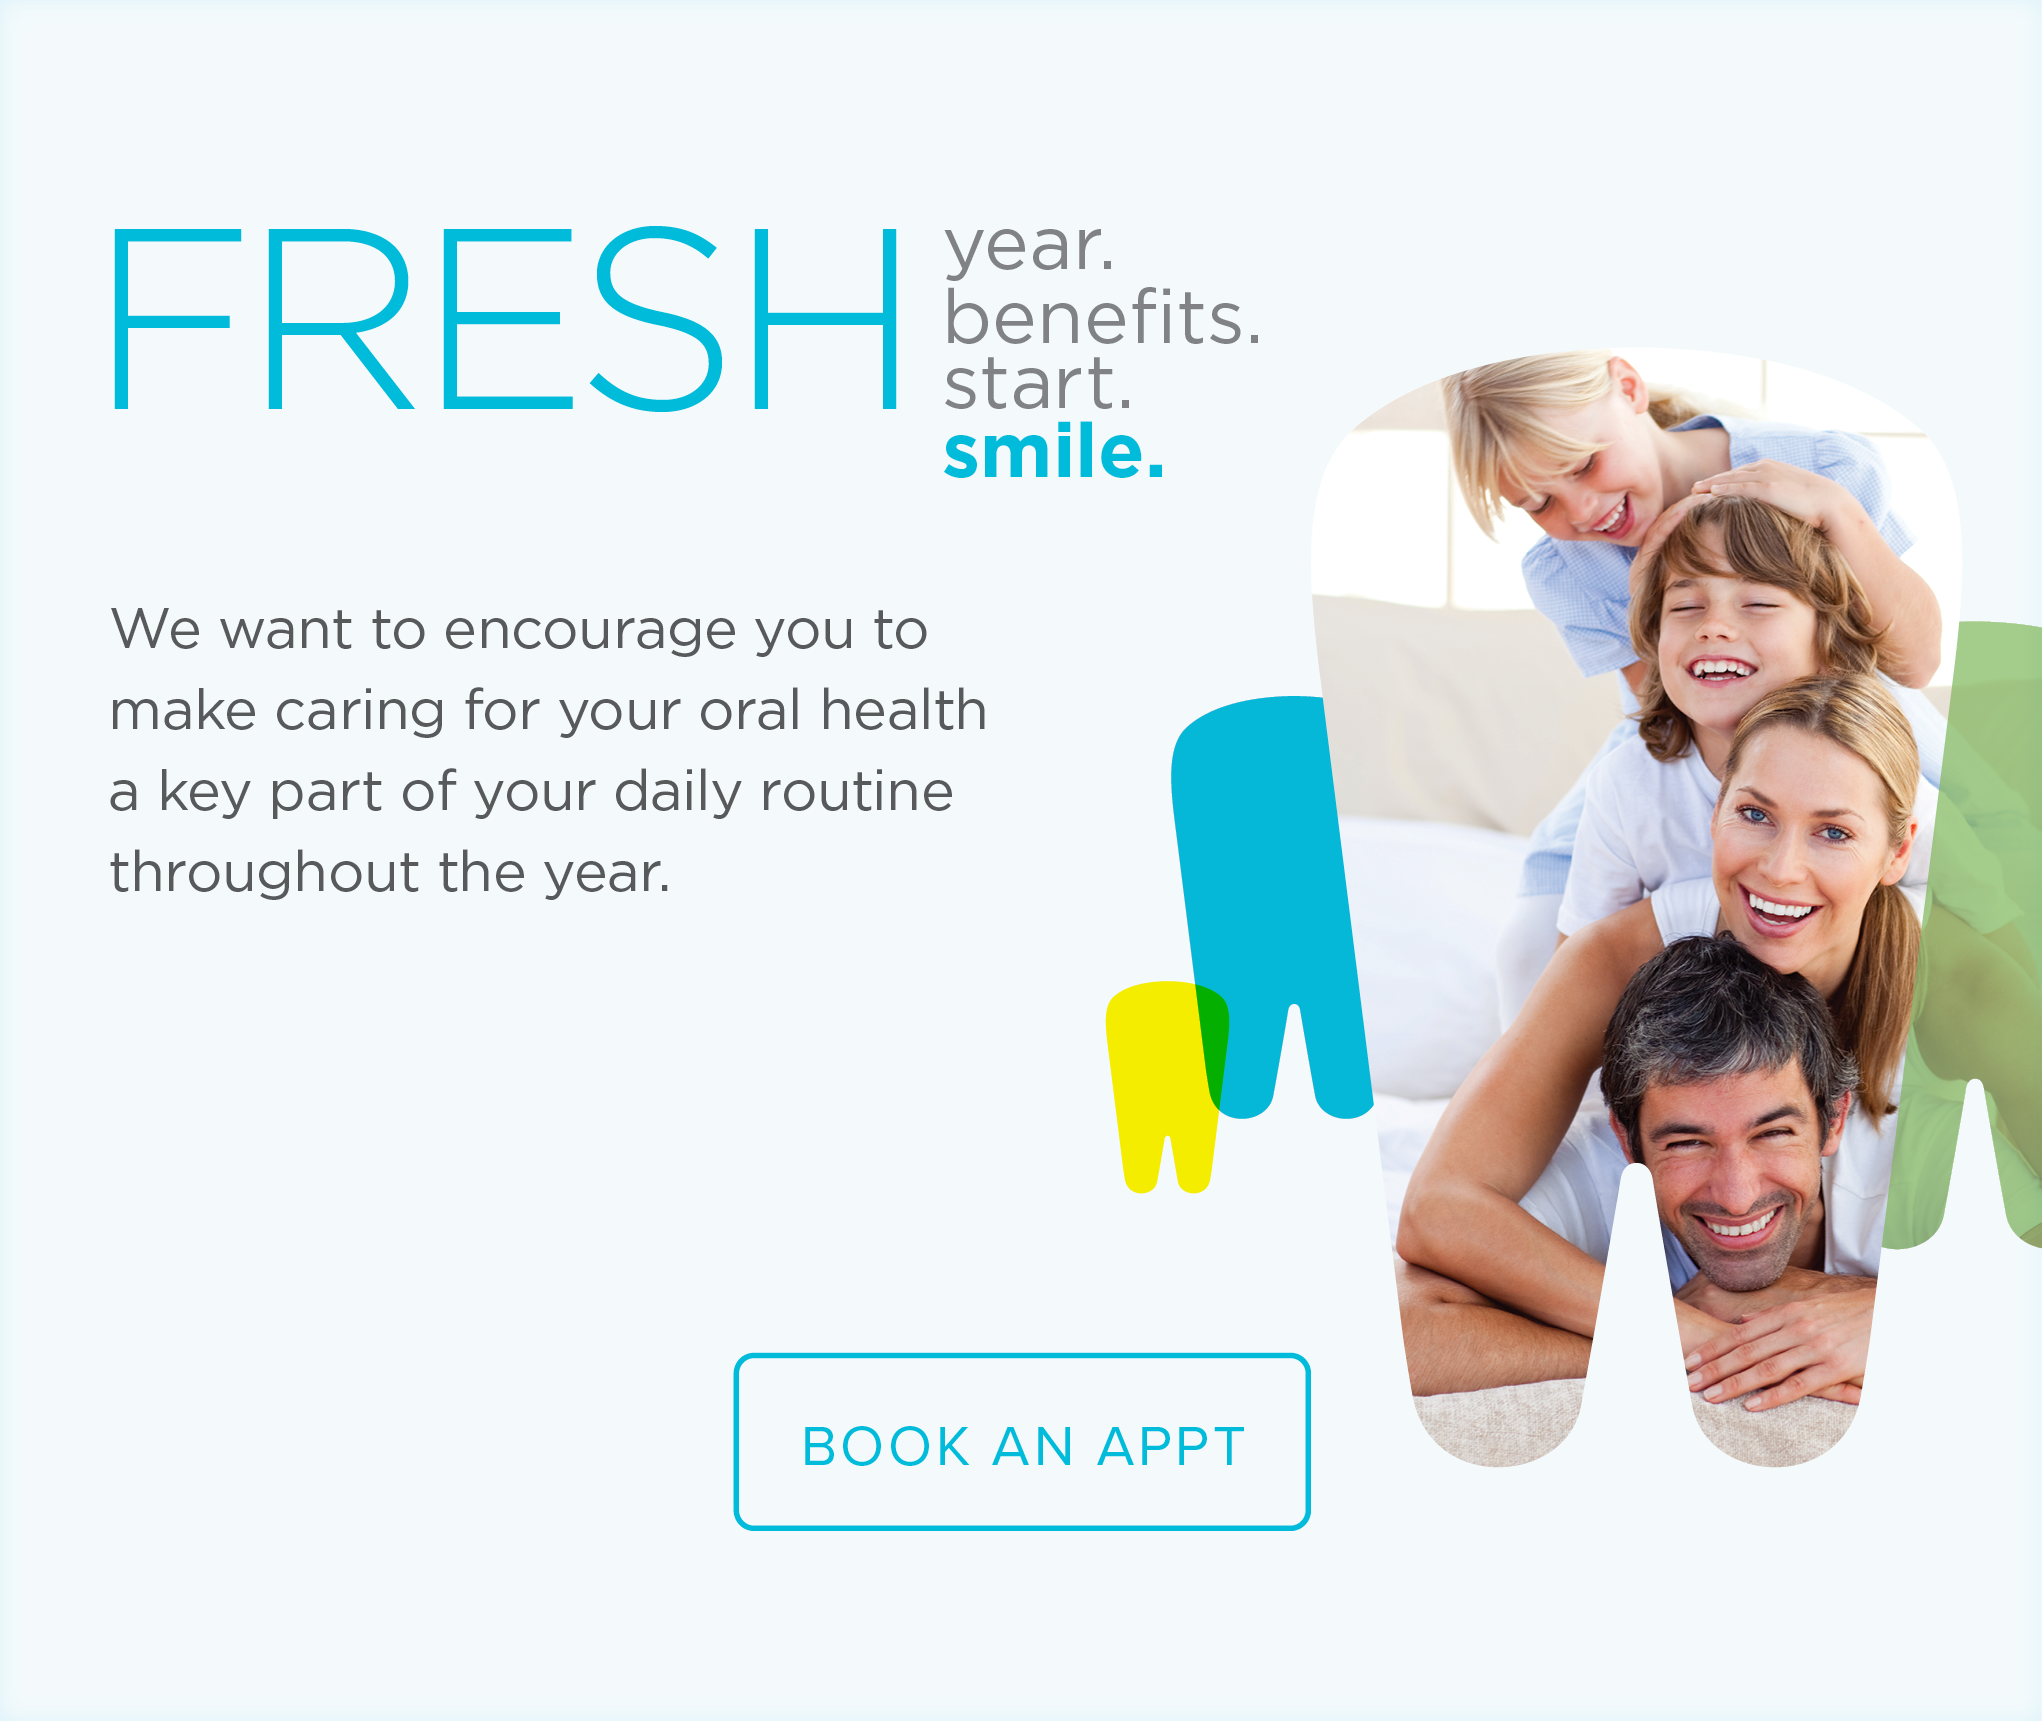 Woodbridge Dental Group and Orthodontics - Make the Most of Your Benefits